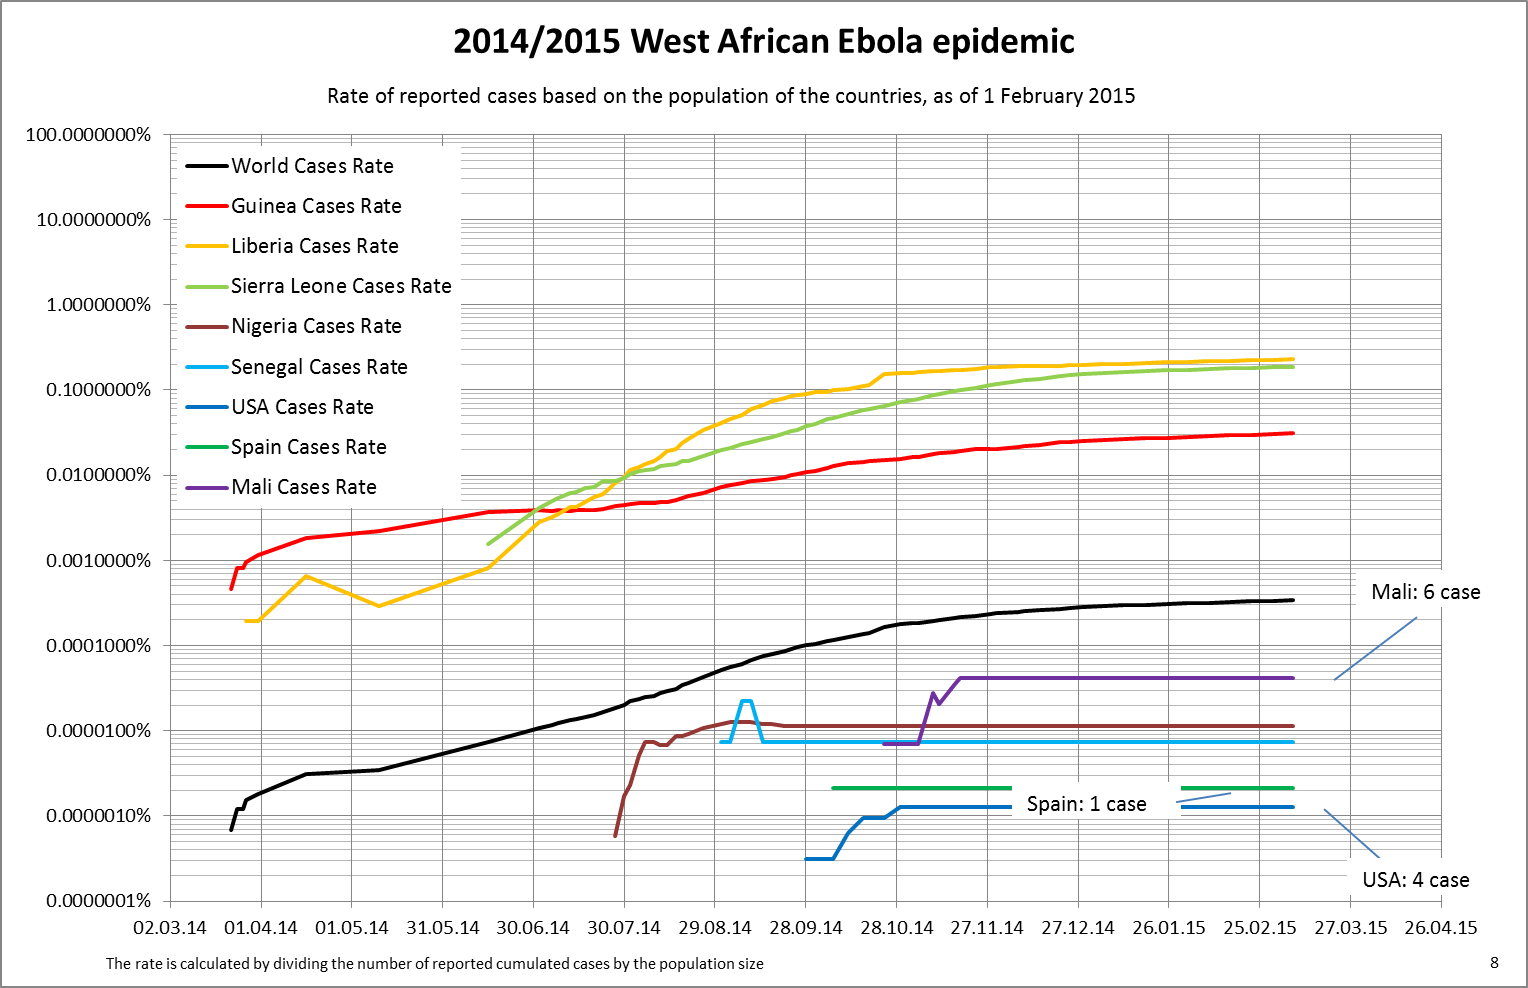 https://i1.wp.com/upload.wikimedia.org/wikipedia/commons/2/26/West_Africa_Ebola_2014_8_cum_case_rate_by_country_log.png